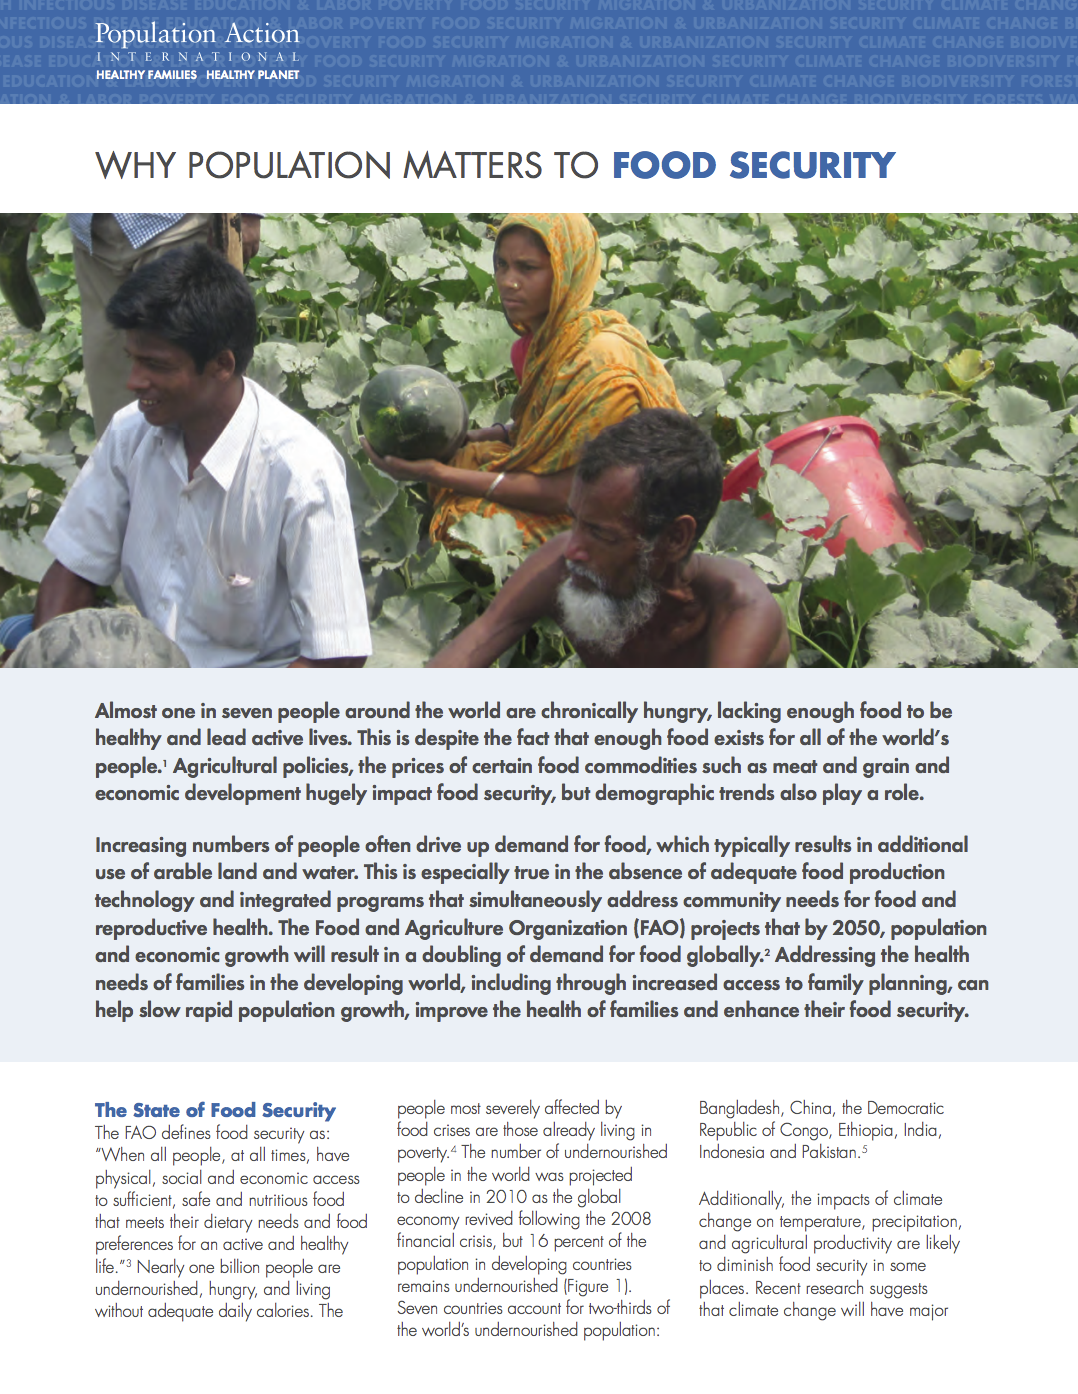 Why Population Plays a Role in Food Security cover image